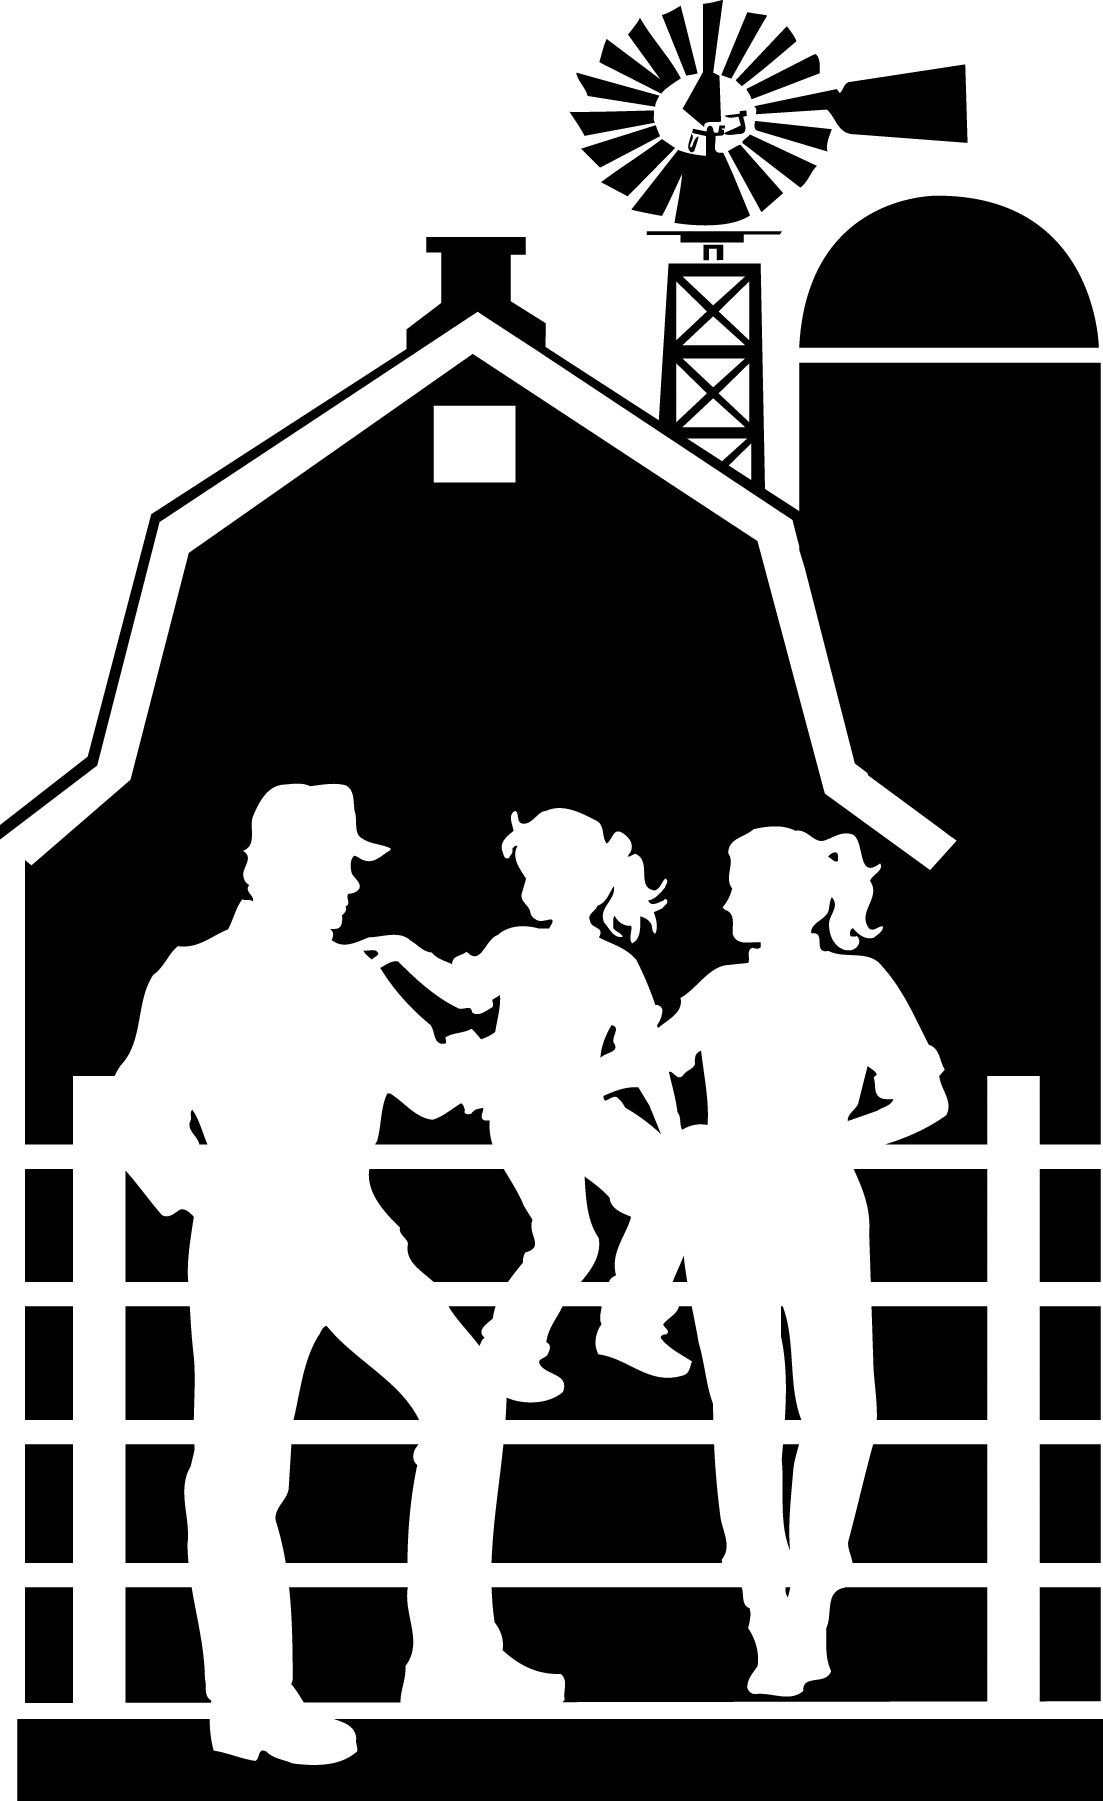 Farm Silhouette Clip Art | Iowa Beef Industry Council - May Beef ...